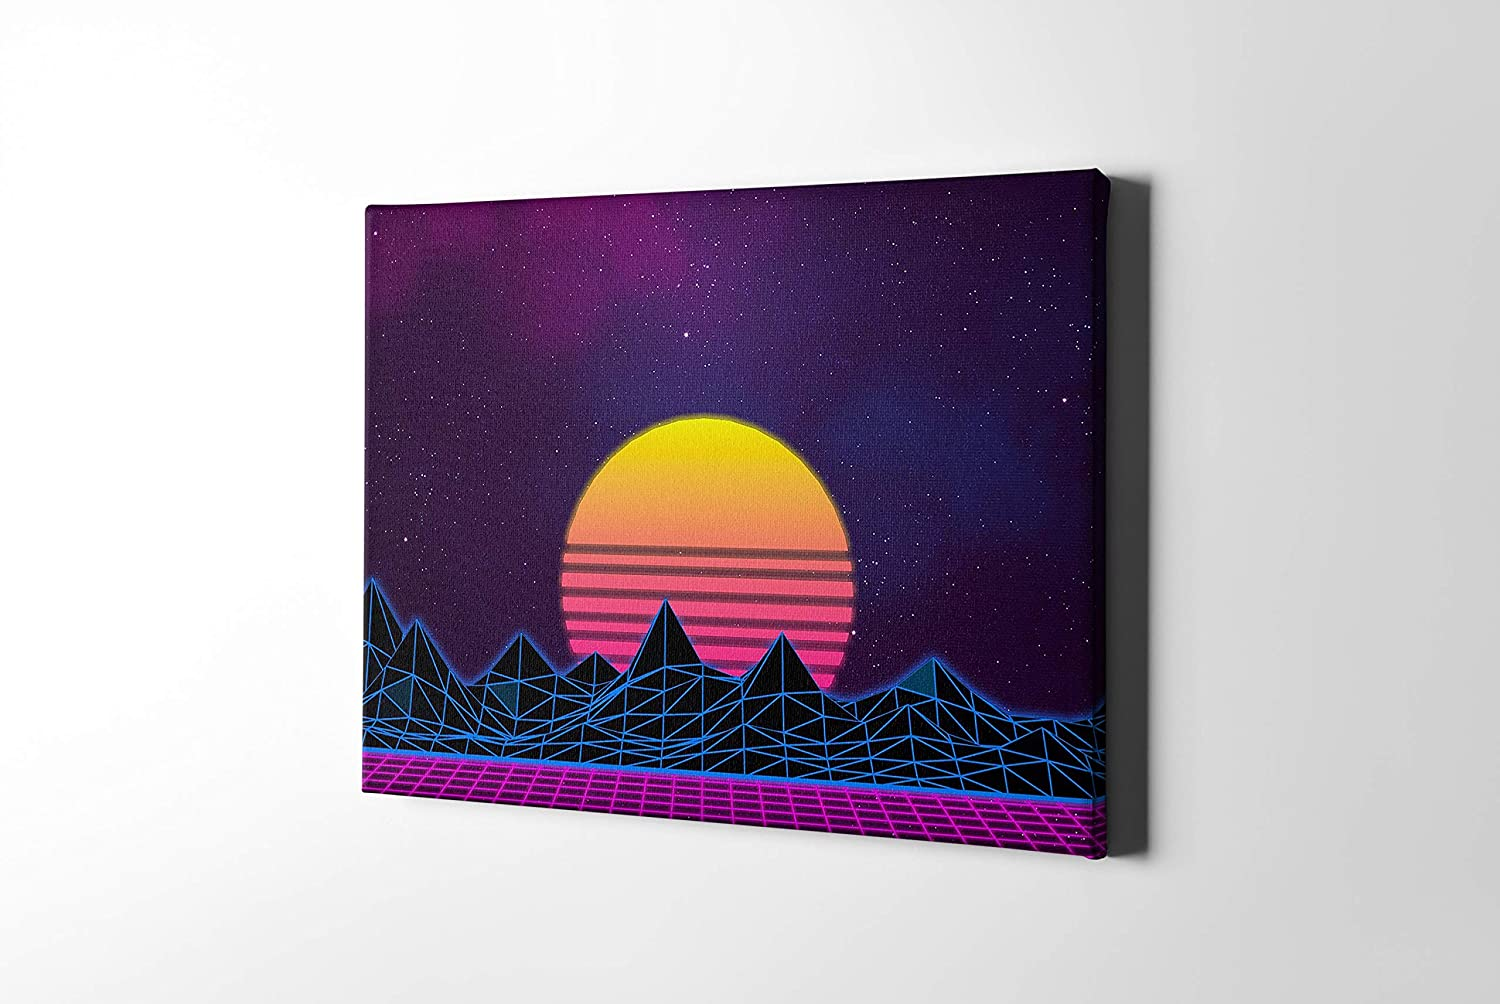 LACEDUSA Canvas Wall Decor CyberPunk VideoGaming Home Prints Art Sci-fi Wall Art Vaporwave Framed Ready to Hang for Bathroom Living Room scenery Home Office Kitchen Home Decoration Sci-fi-Sunrise